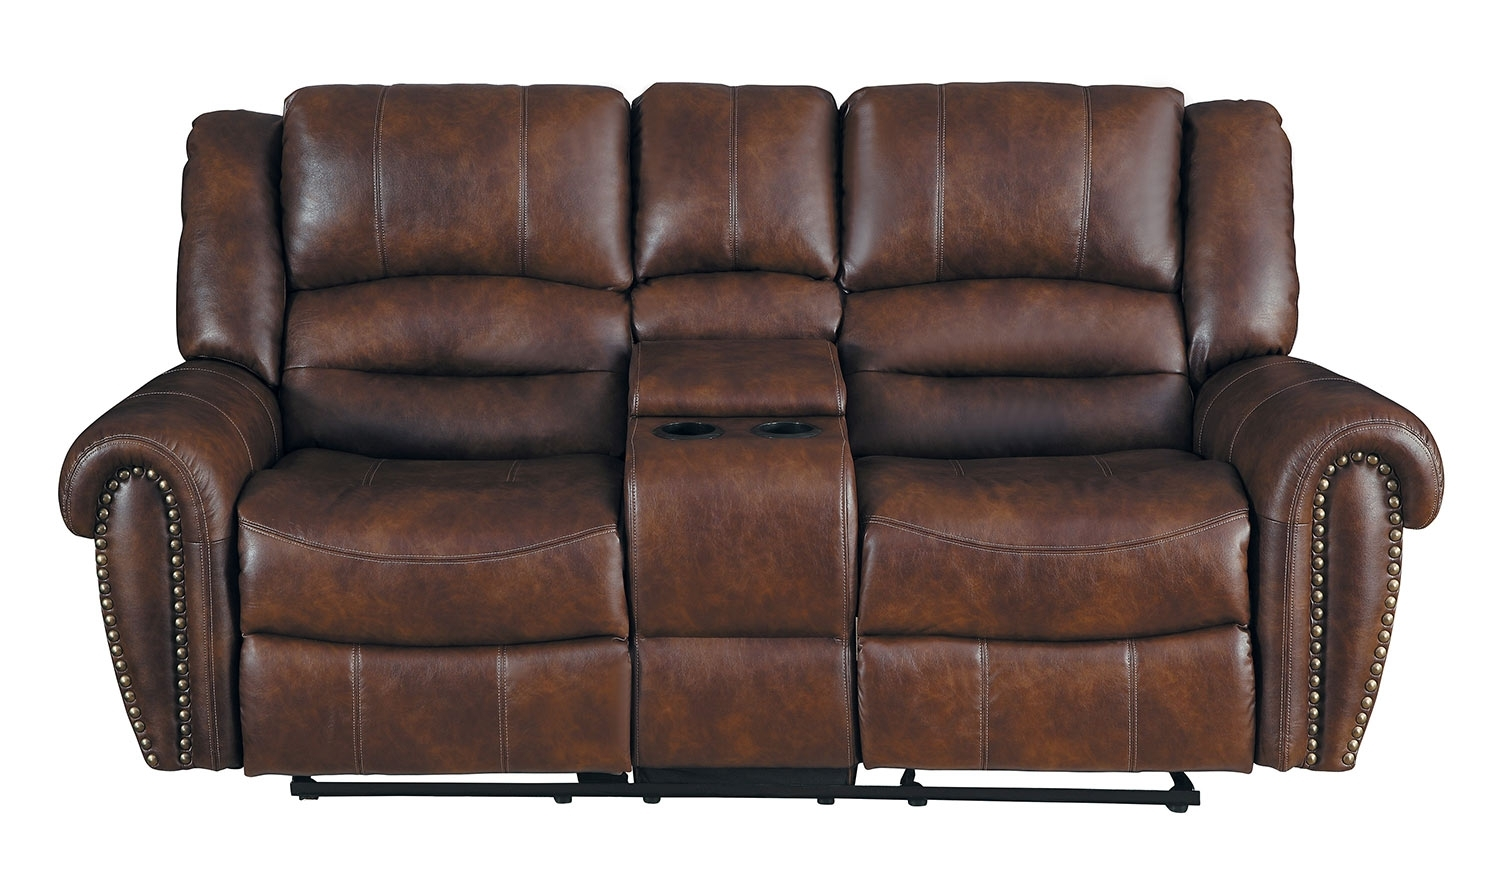 Homelegance Center Hill Reclining Sectional Set - Dark Brown 9668Nsd in Clyde Saddle 3 Piece Power Reclining Sectionals With Power Headrest & Usb (Image 15 of 30)